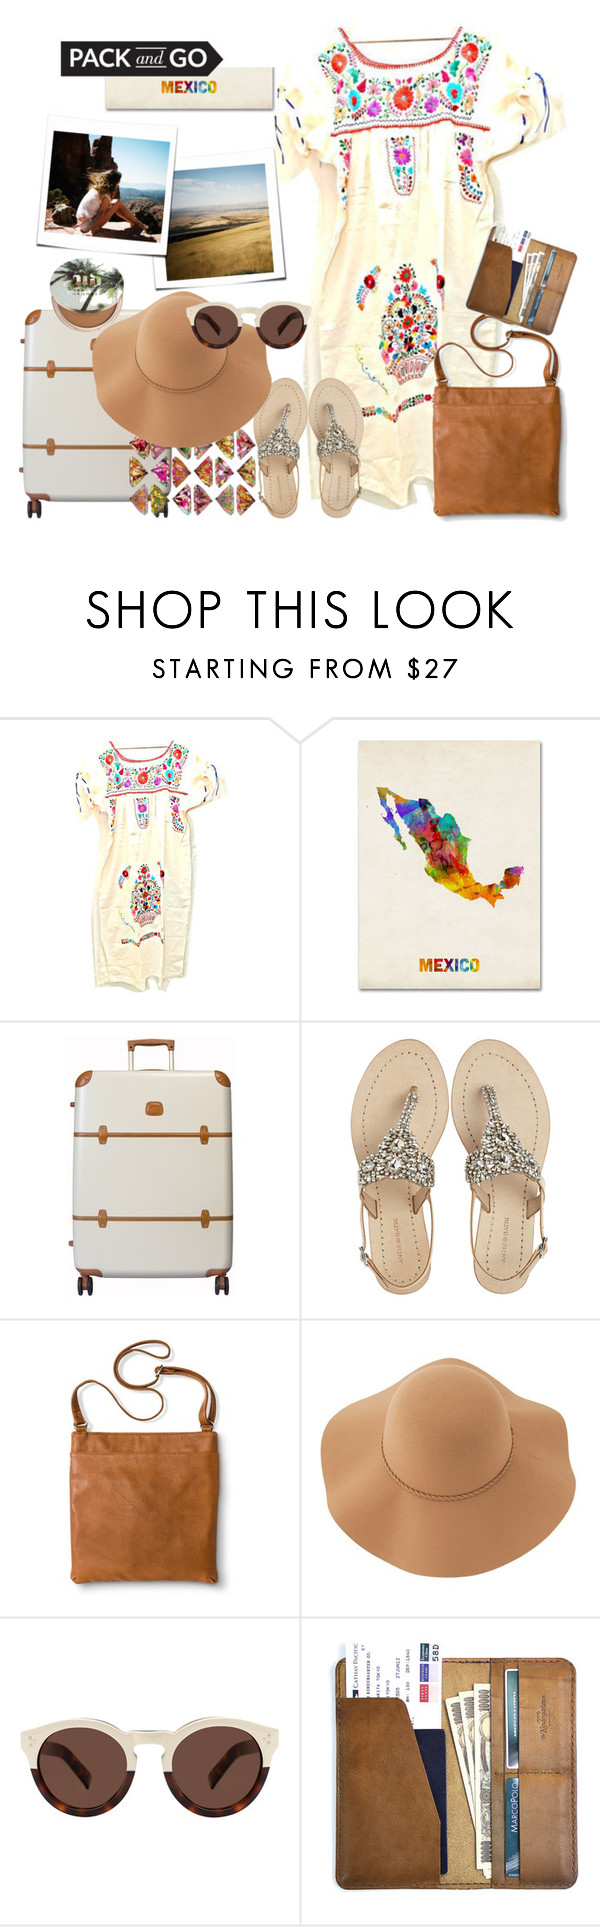 """""""Pack and Go: Mexico"""" by splendourit ❤ liked on Polyvore featuring Trademark Fine Art, Bric's, Antik Batik, Merona, Sans Souci, Illesteva, CO and Urban Decay"""